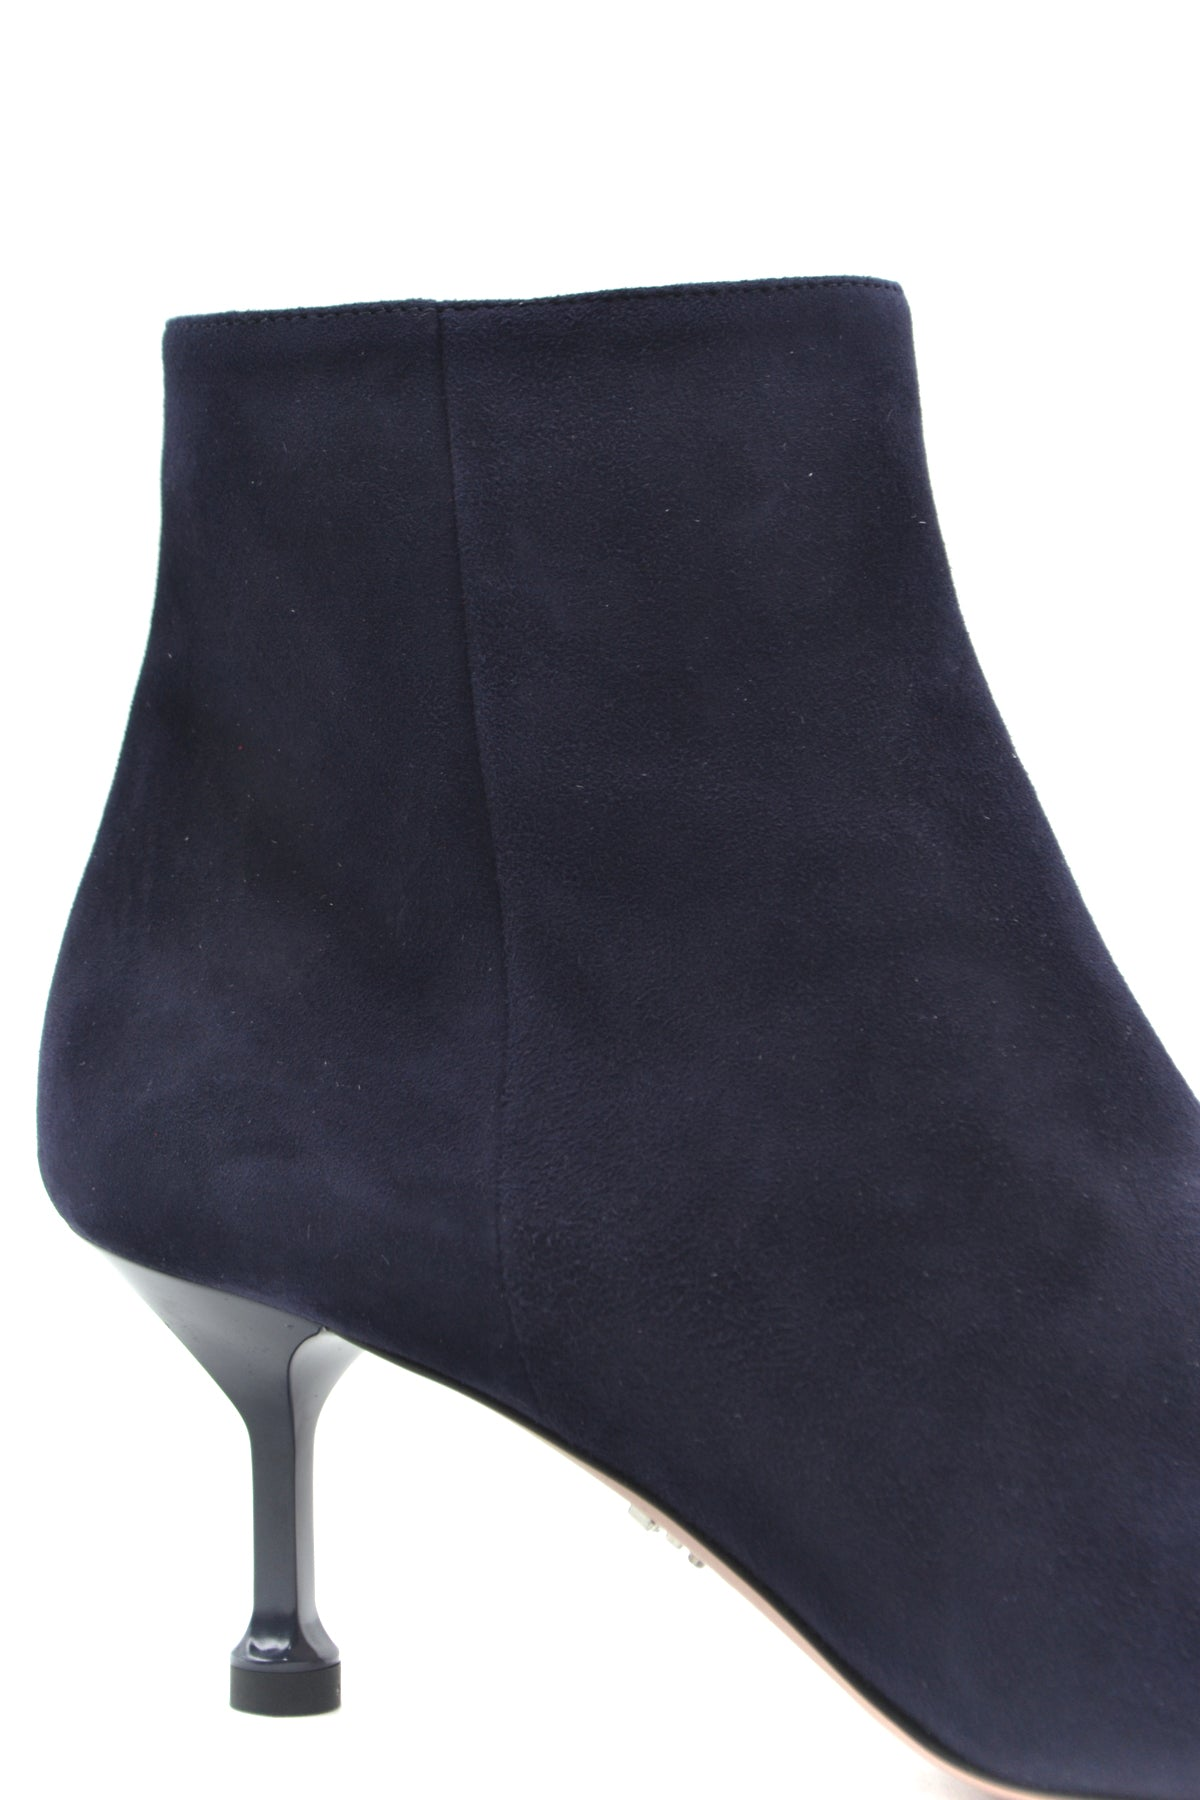 Shoes Prada-Women's Fashion - Women's Shoes - Women's Boots-Product Details Terms: New With LabelMain Color: BlueType Of Accessory: BootsSeason: Fall / WinterMade In: ItalyGender: WomanHeel'S Height: 6,5Size: EuComposition: Chamois 100%Year: 2020Manufacturer Part Number: 1T636L 008 F008-Keyomi-Sook